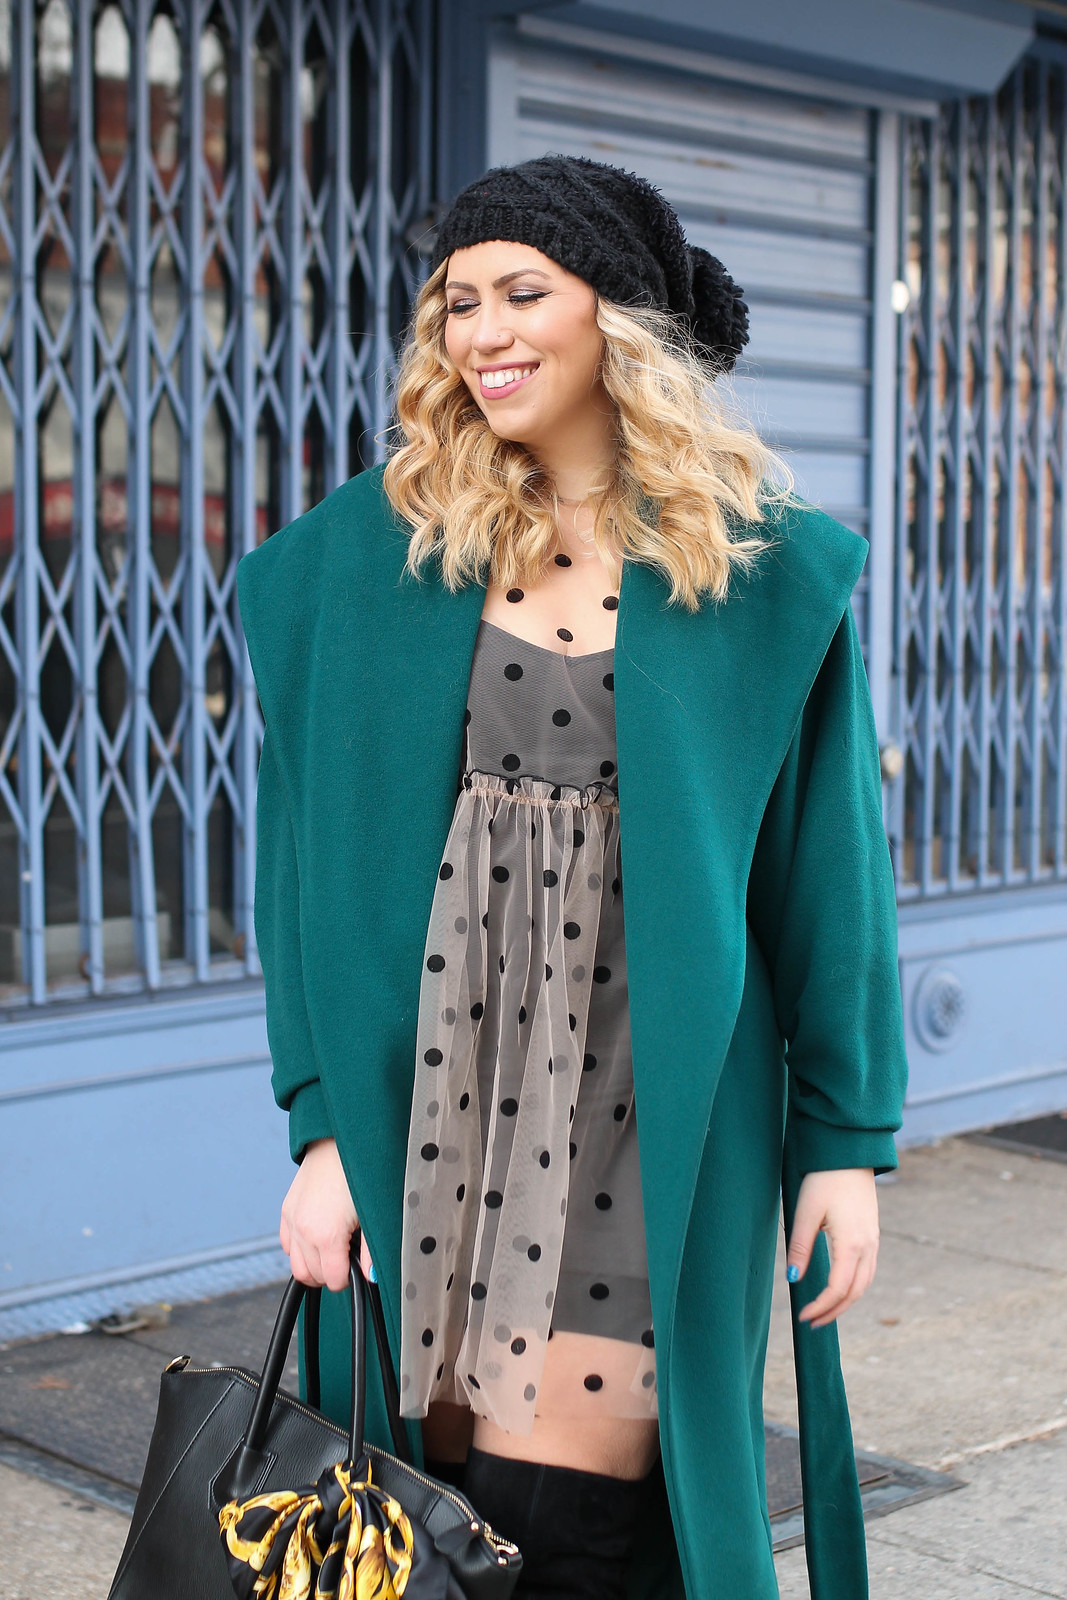 Black Slouchy Beanie Vintage Emerald Green Winter Coat Sheer Polka Dot Dress Outfit